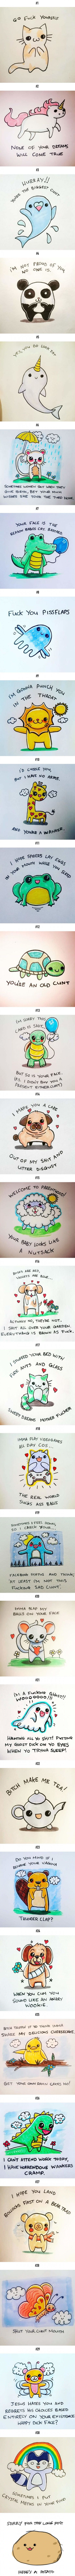 30 Offensively Cute Greeting Cards (By NeverStayDead)